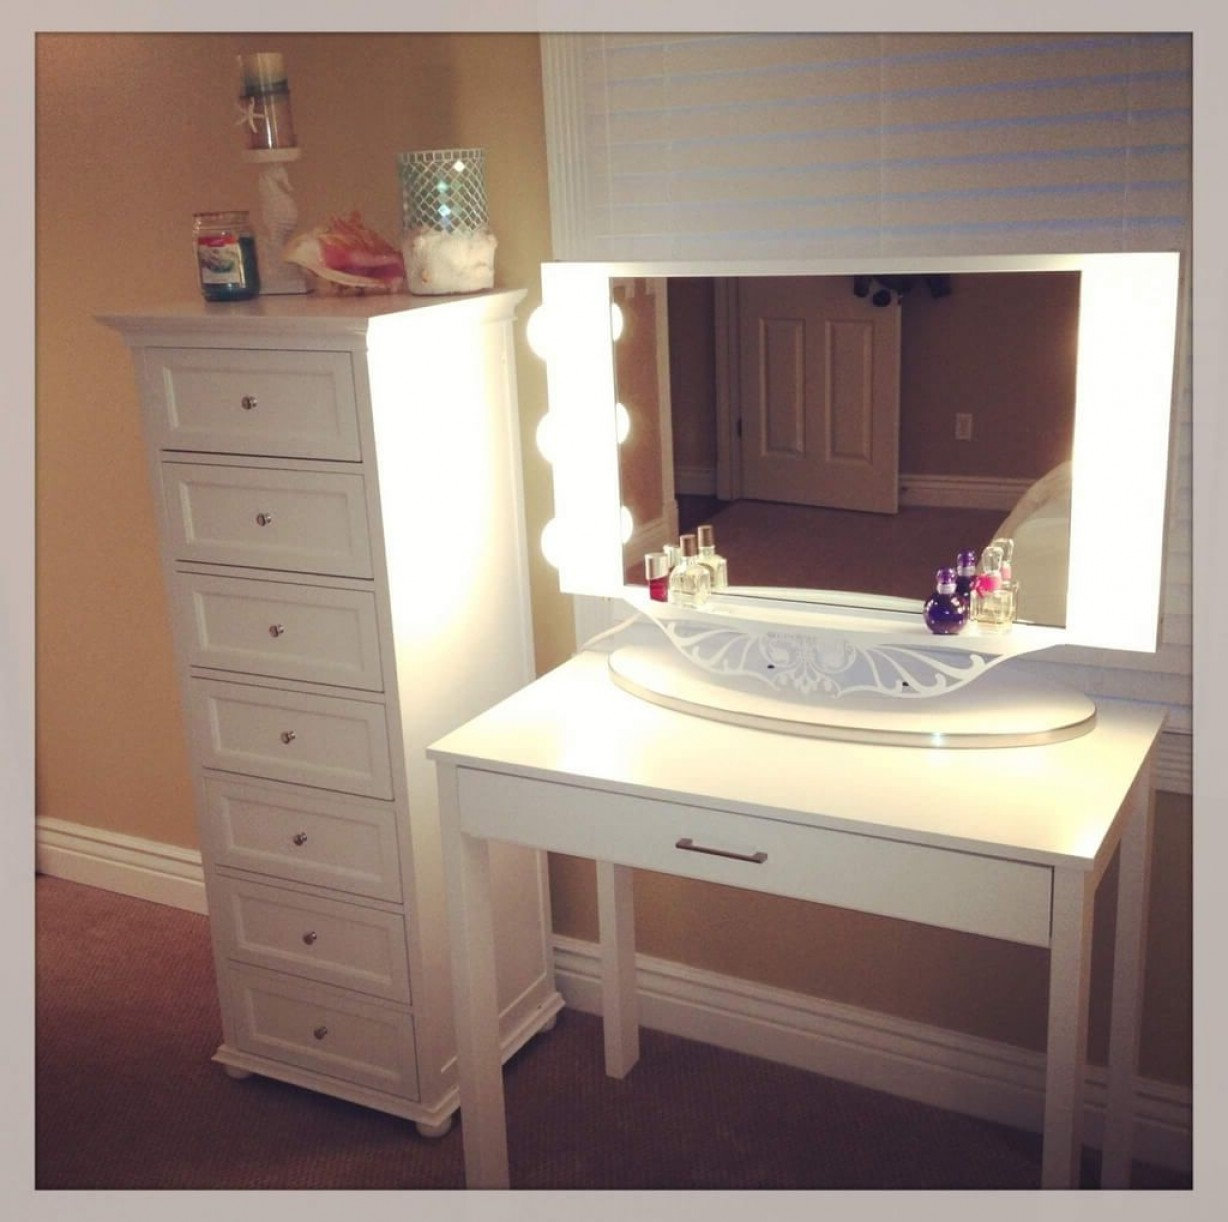 Makeup Vanity Set with Lights | Makeup Vanity Table with Lighted Mirror | Makeup Mirror with Lights Walmart